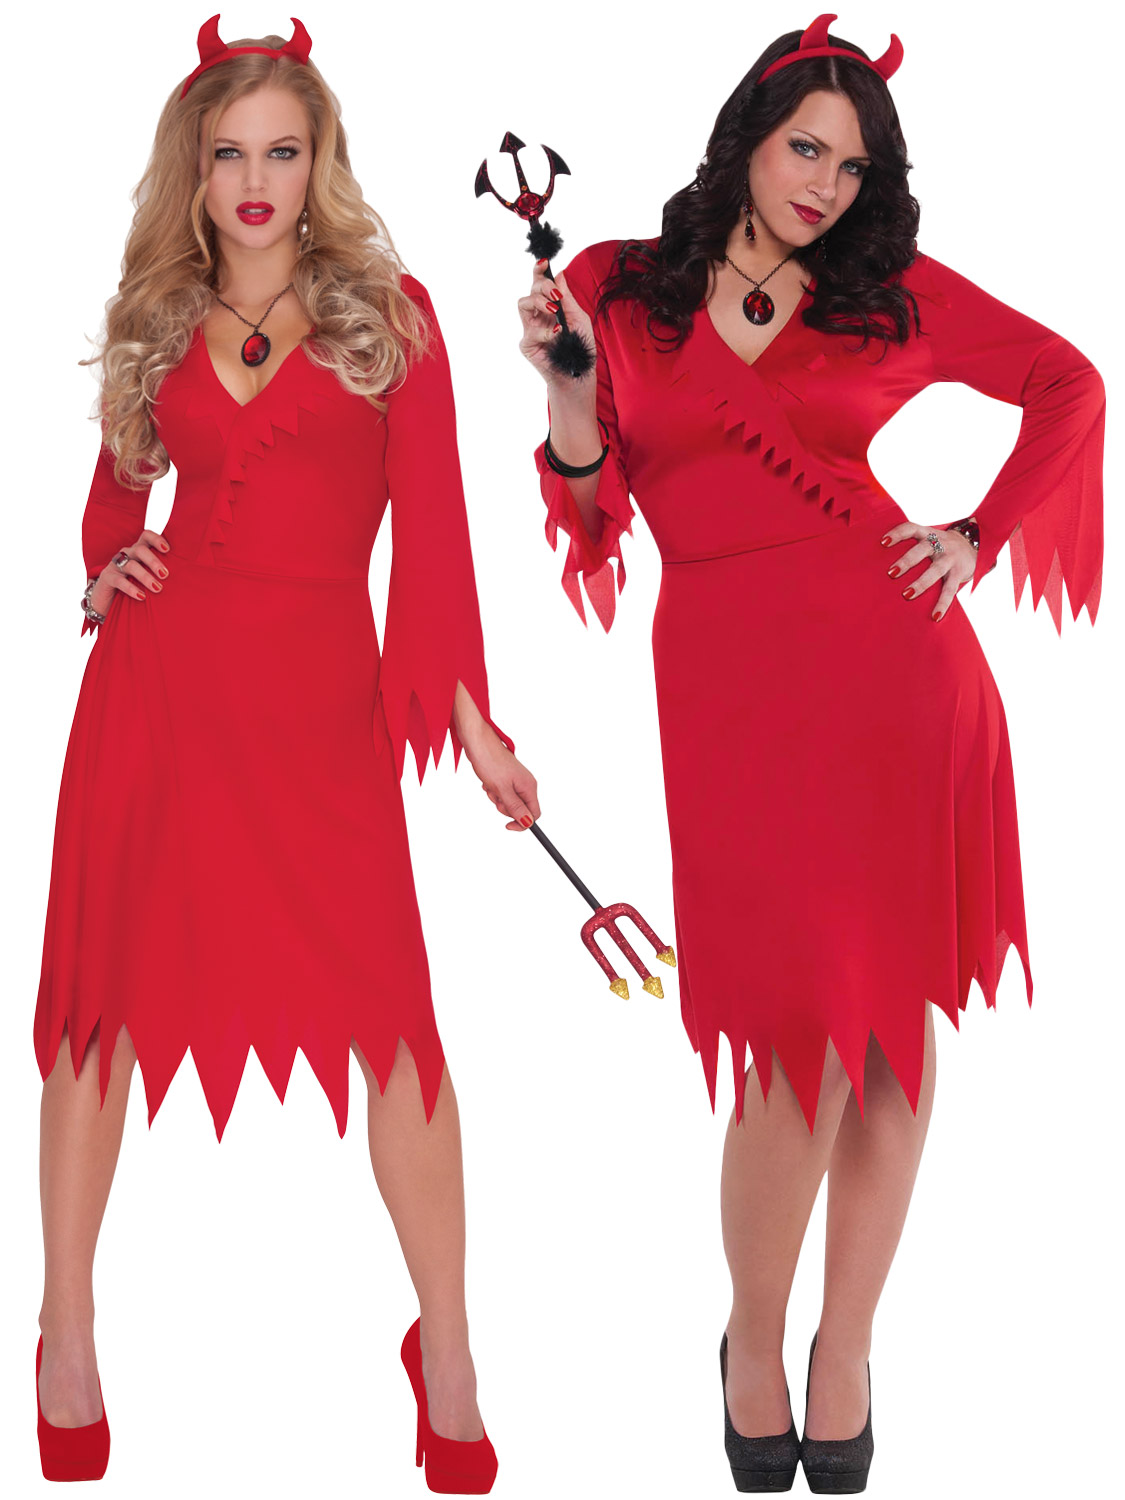 Ladies red hot devil costume adults halloween fancy dress womens transform yourself into a sexy devil with this ladies red hot devil costume ideal if you are dressing up for halloween solutioingenieria Images